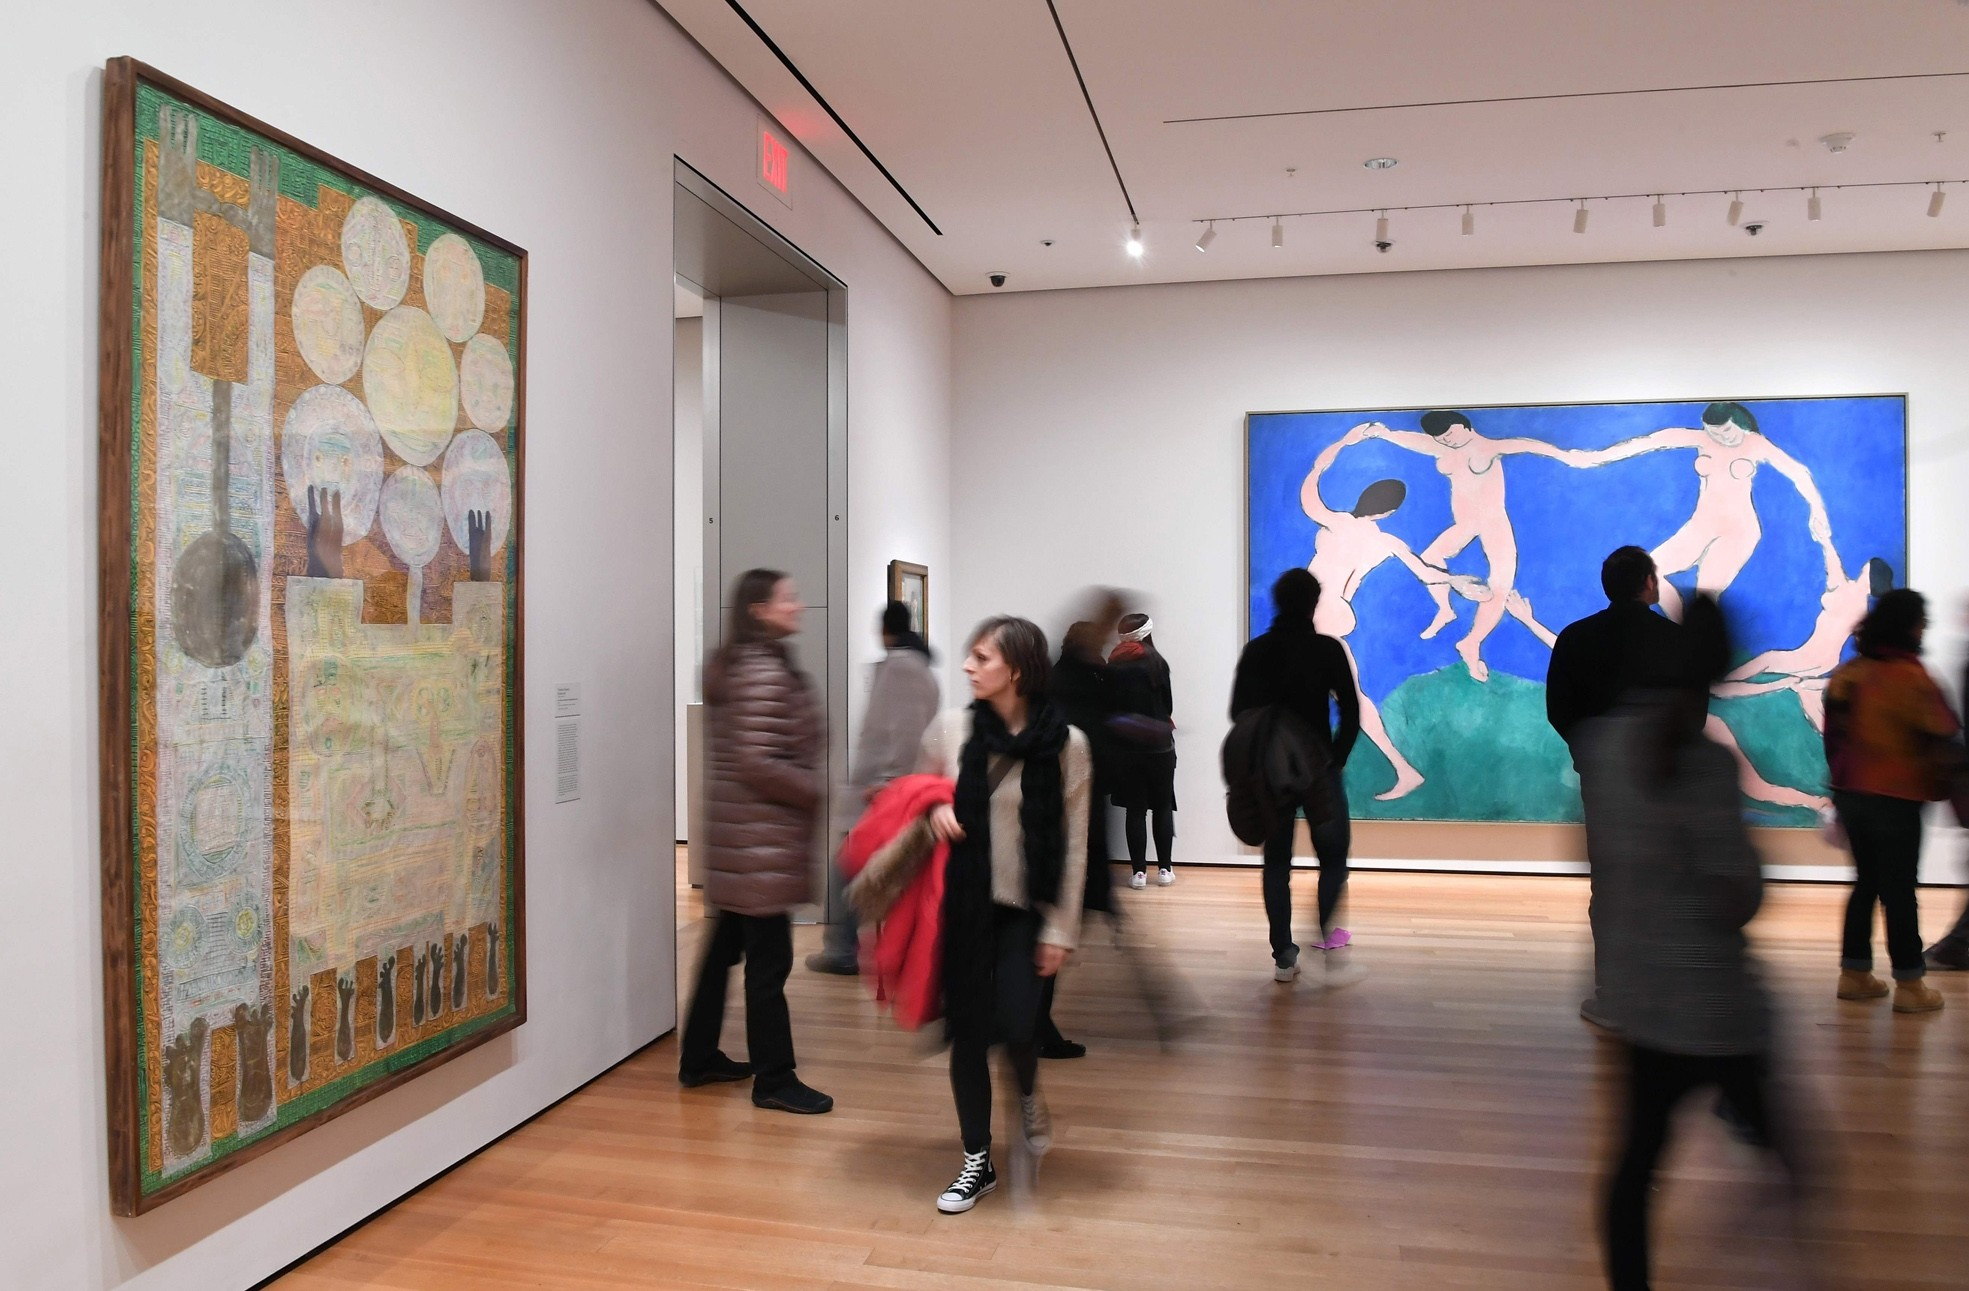 Visitors look at artwork by Iranian painter and sculptor Charles Hossein Zenderoudi on Friday at the Museum of Modern Art in New York.